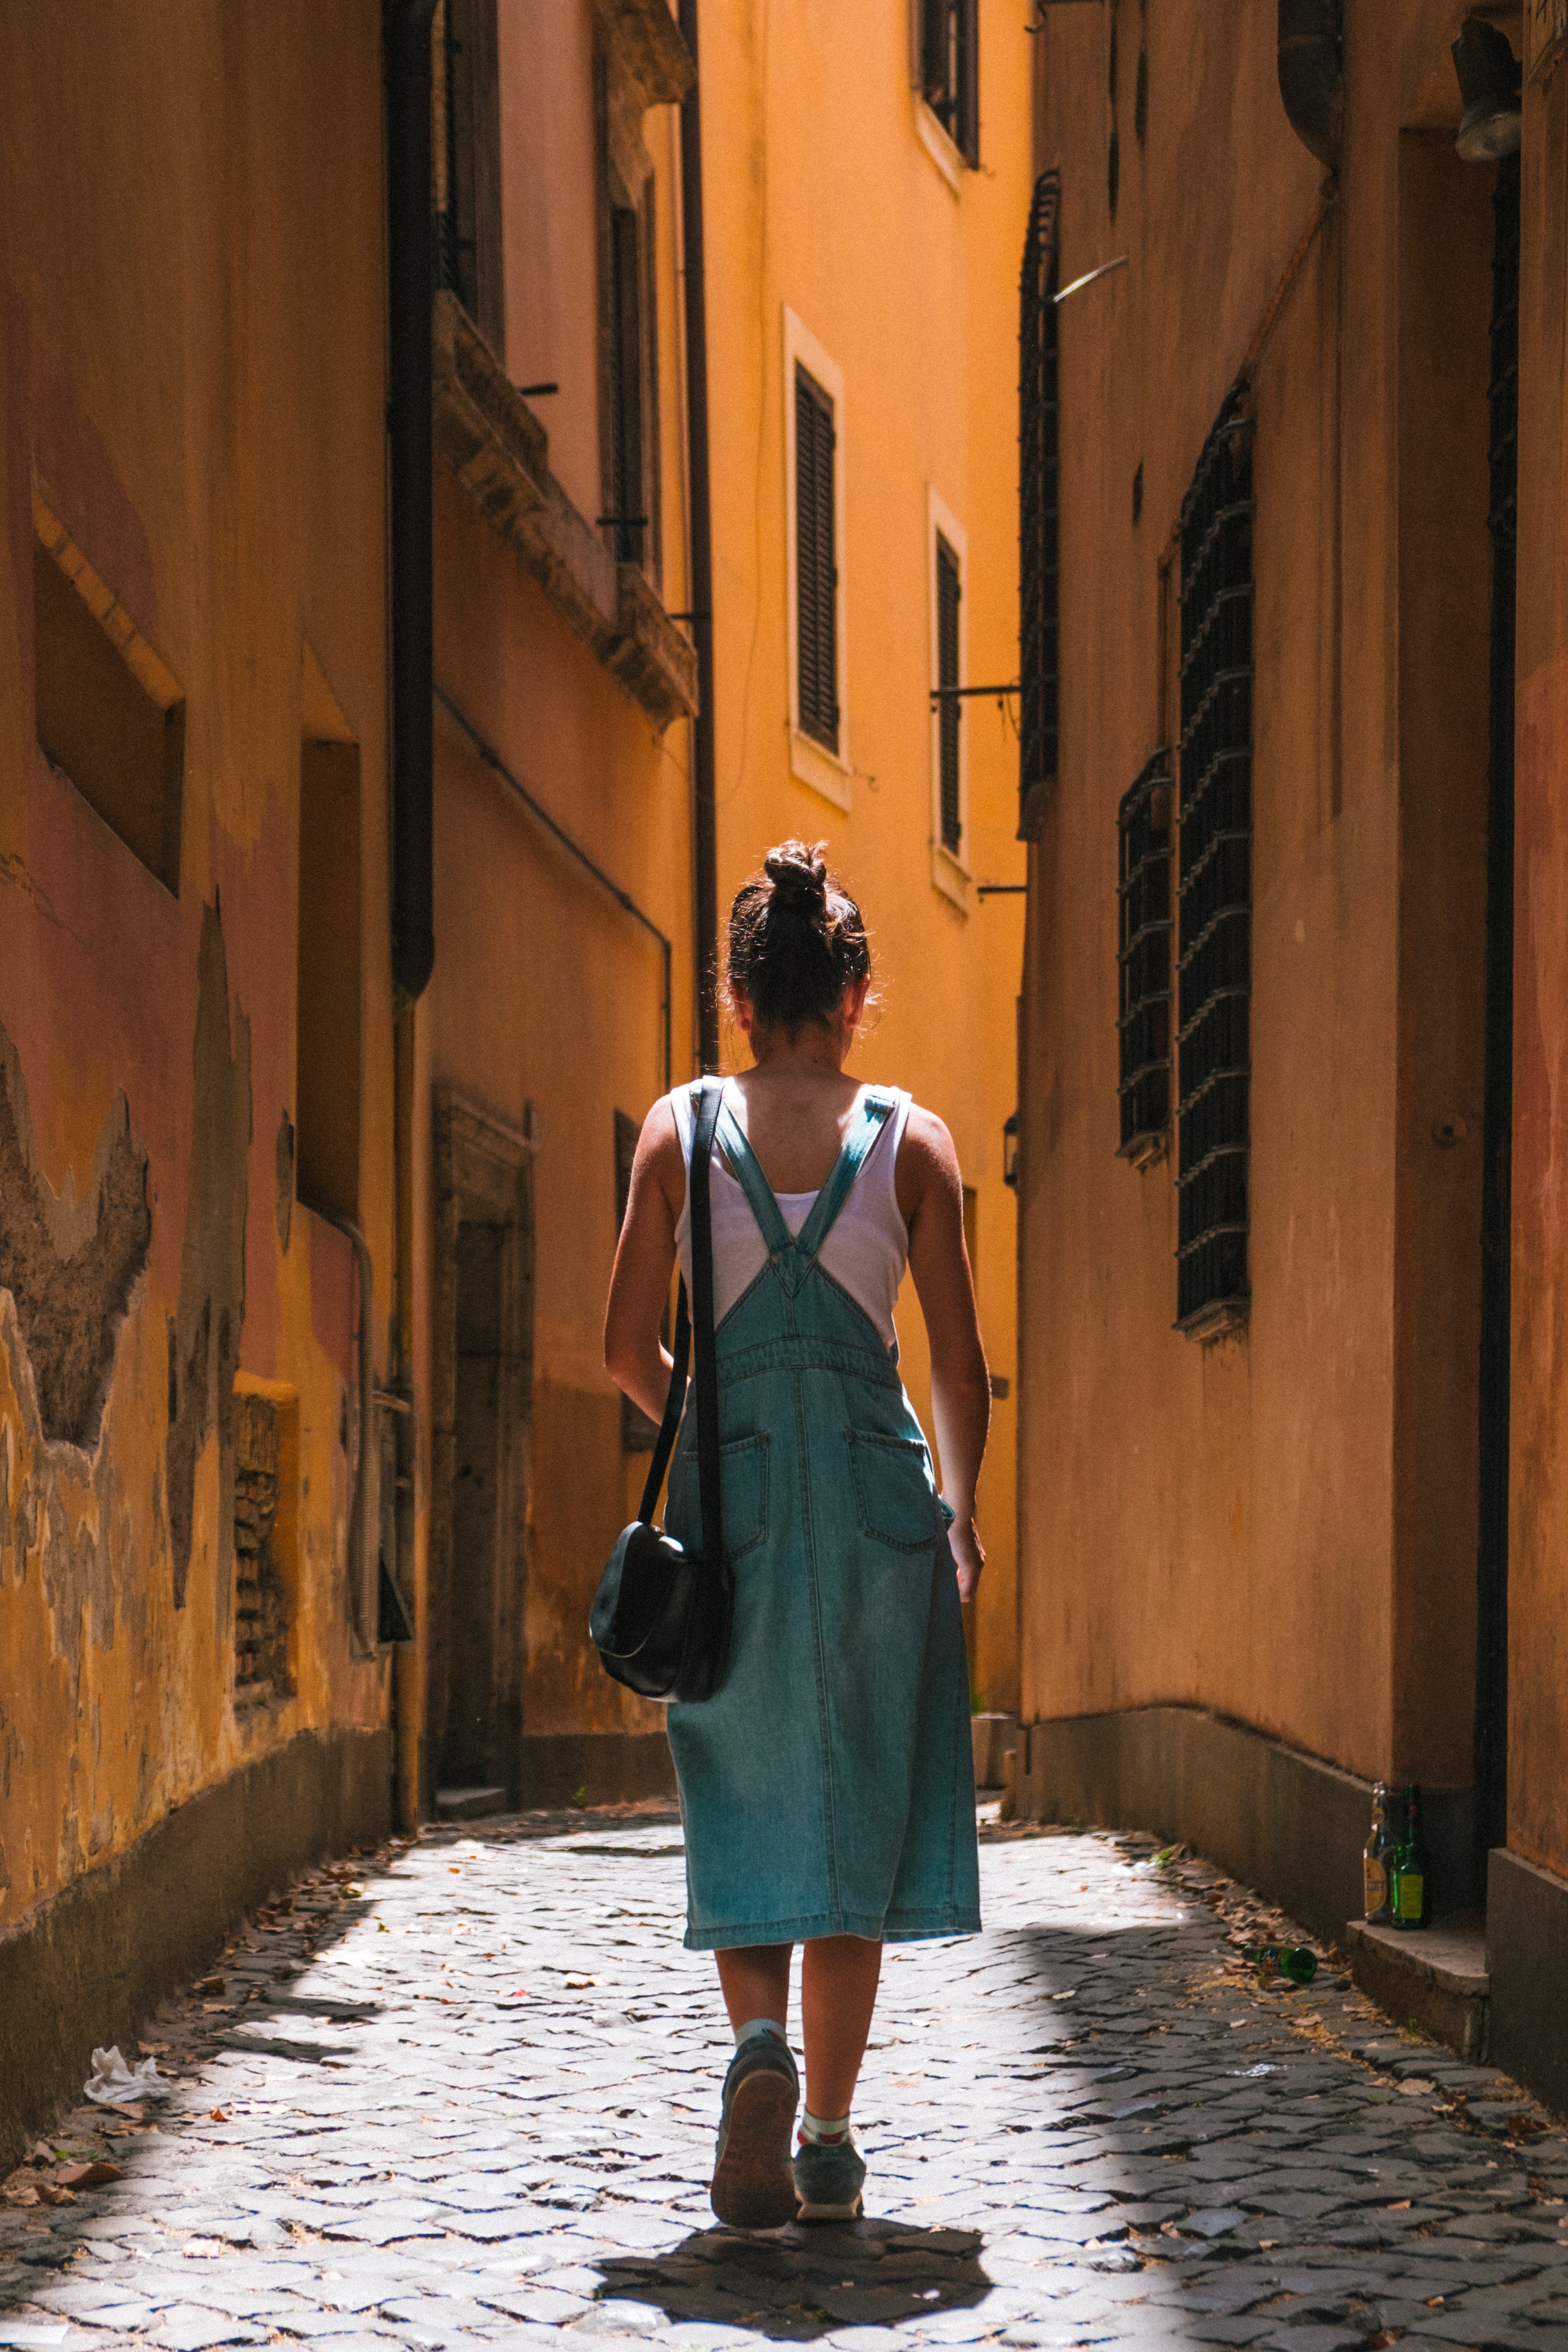 woman in dress walking on alley